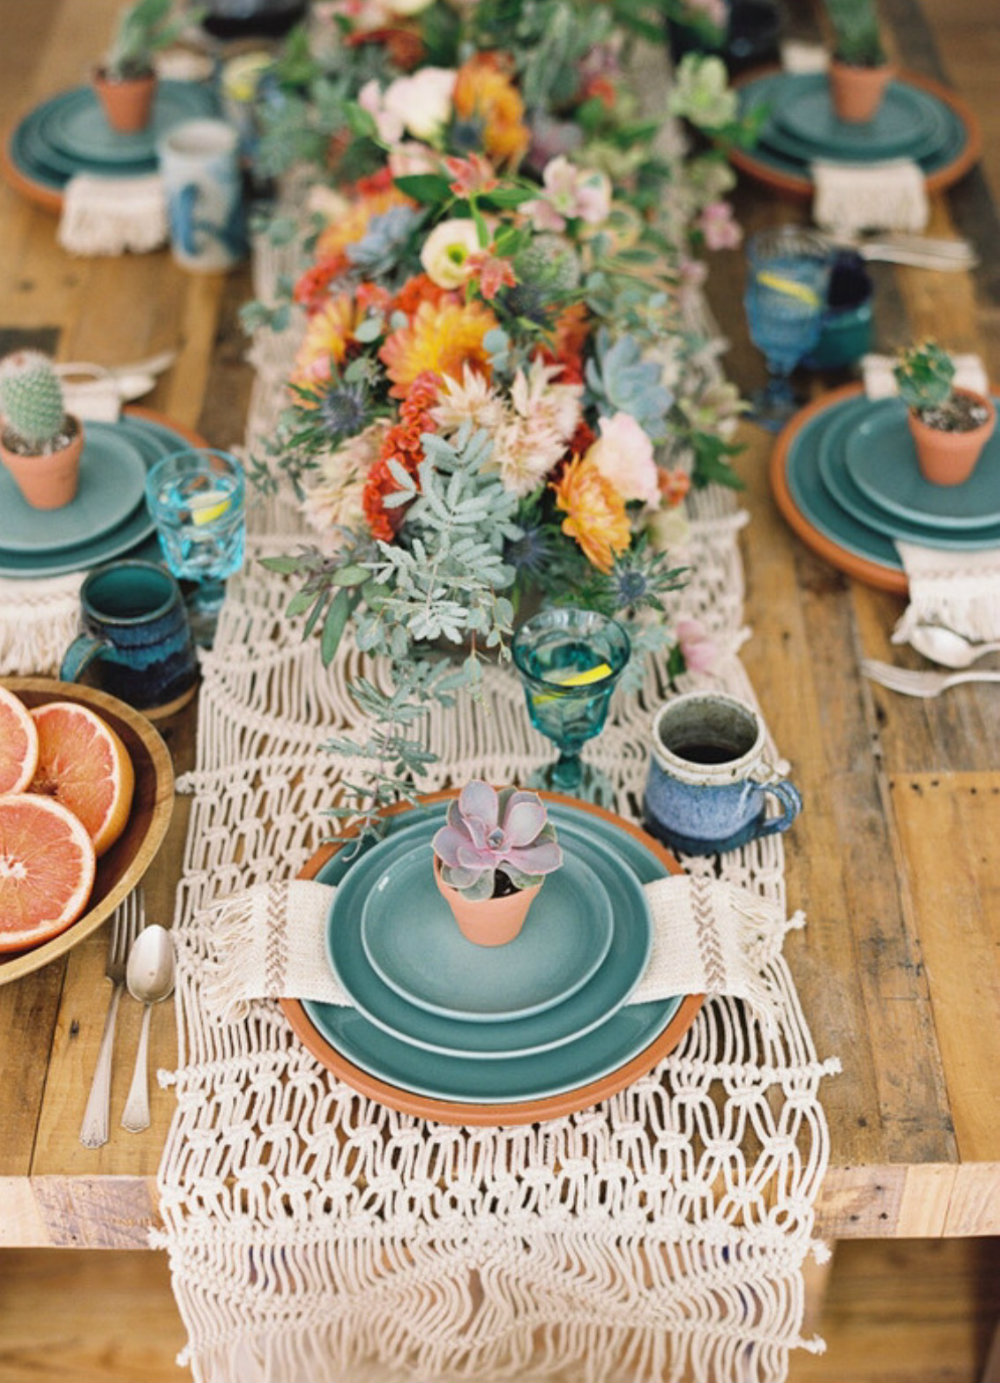 Stunning Summer Table Setting Ideas 04 summer table setting ideas Stunning Summer Table Setting Ideas Stunning & Stunning Summer Table Setting Ideas